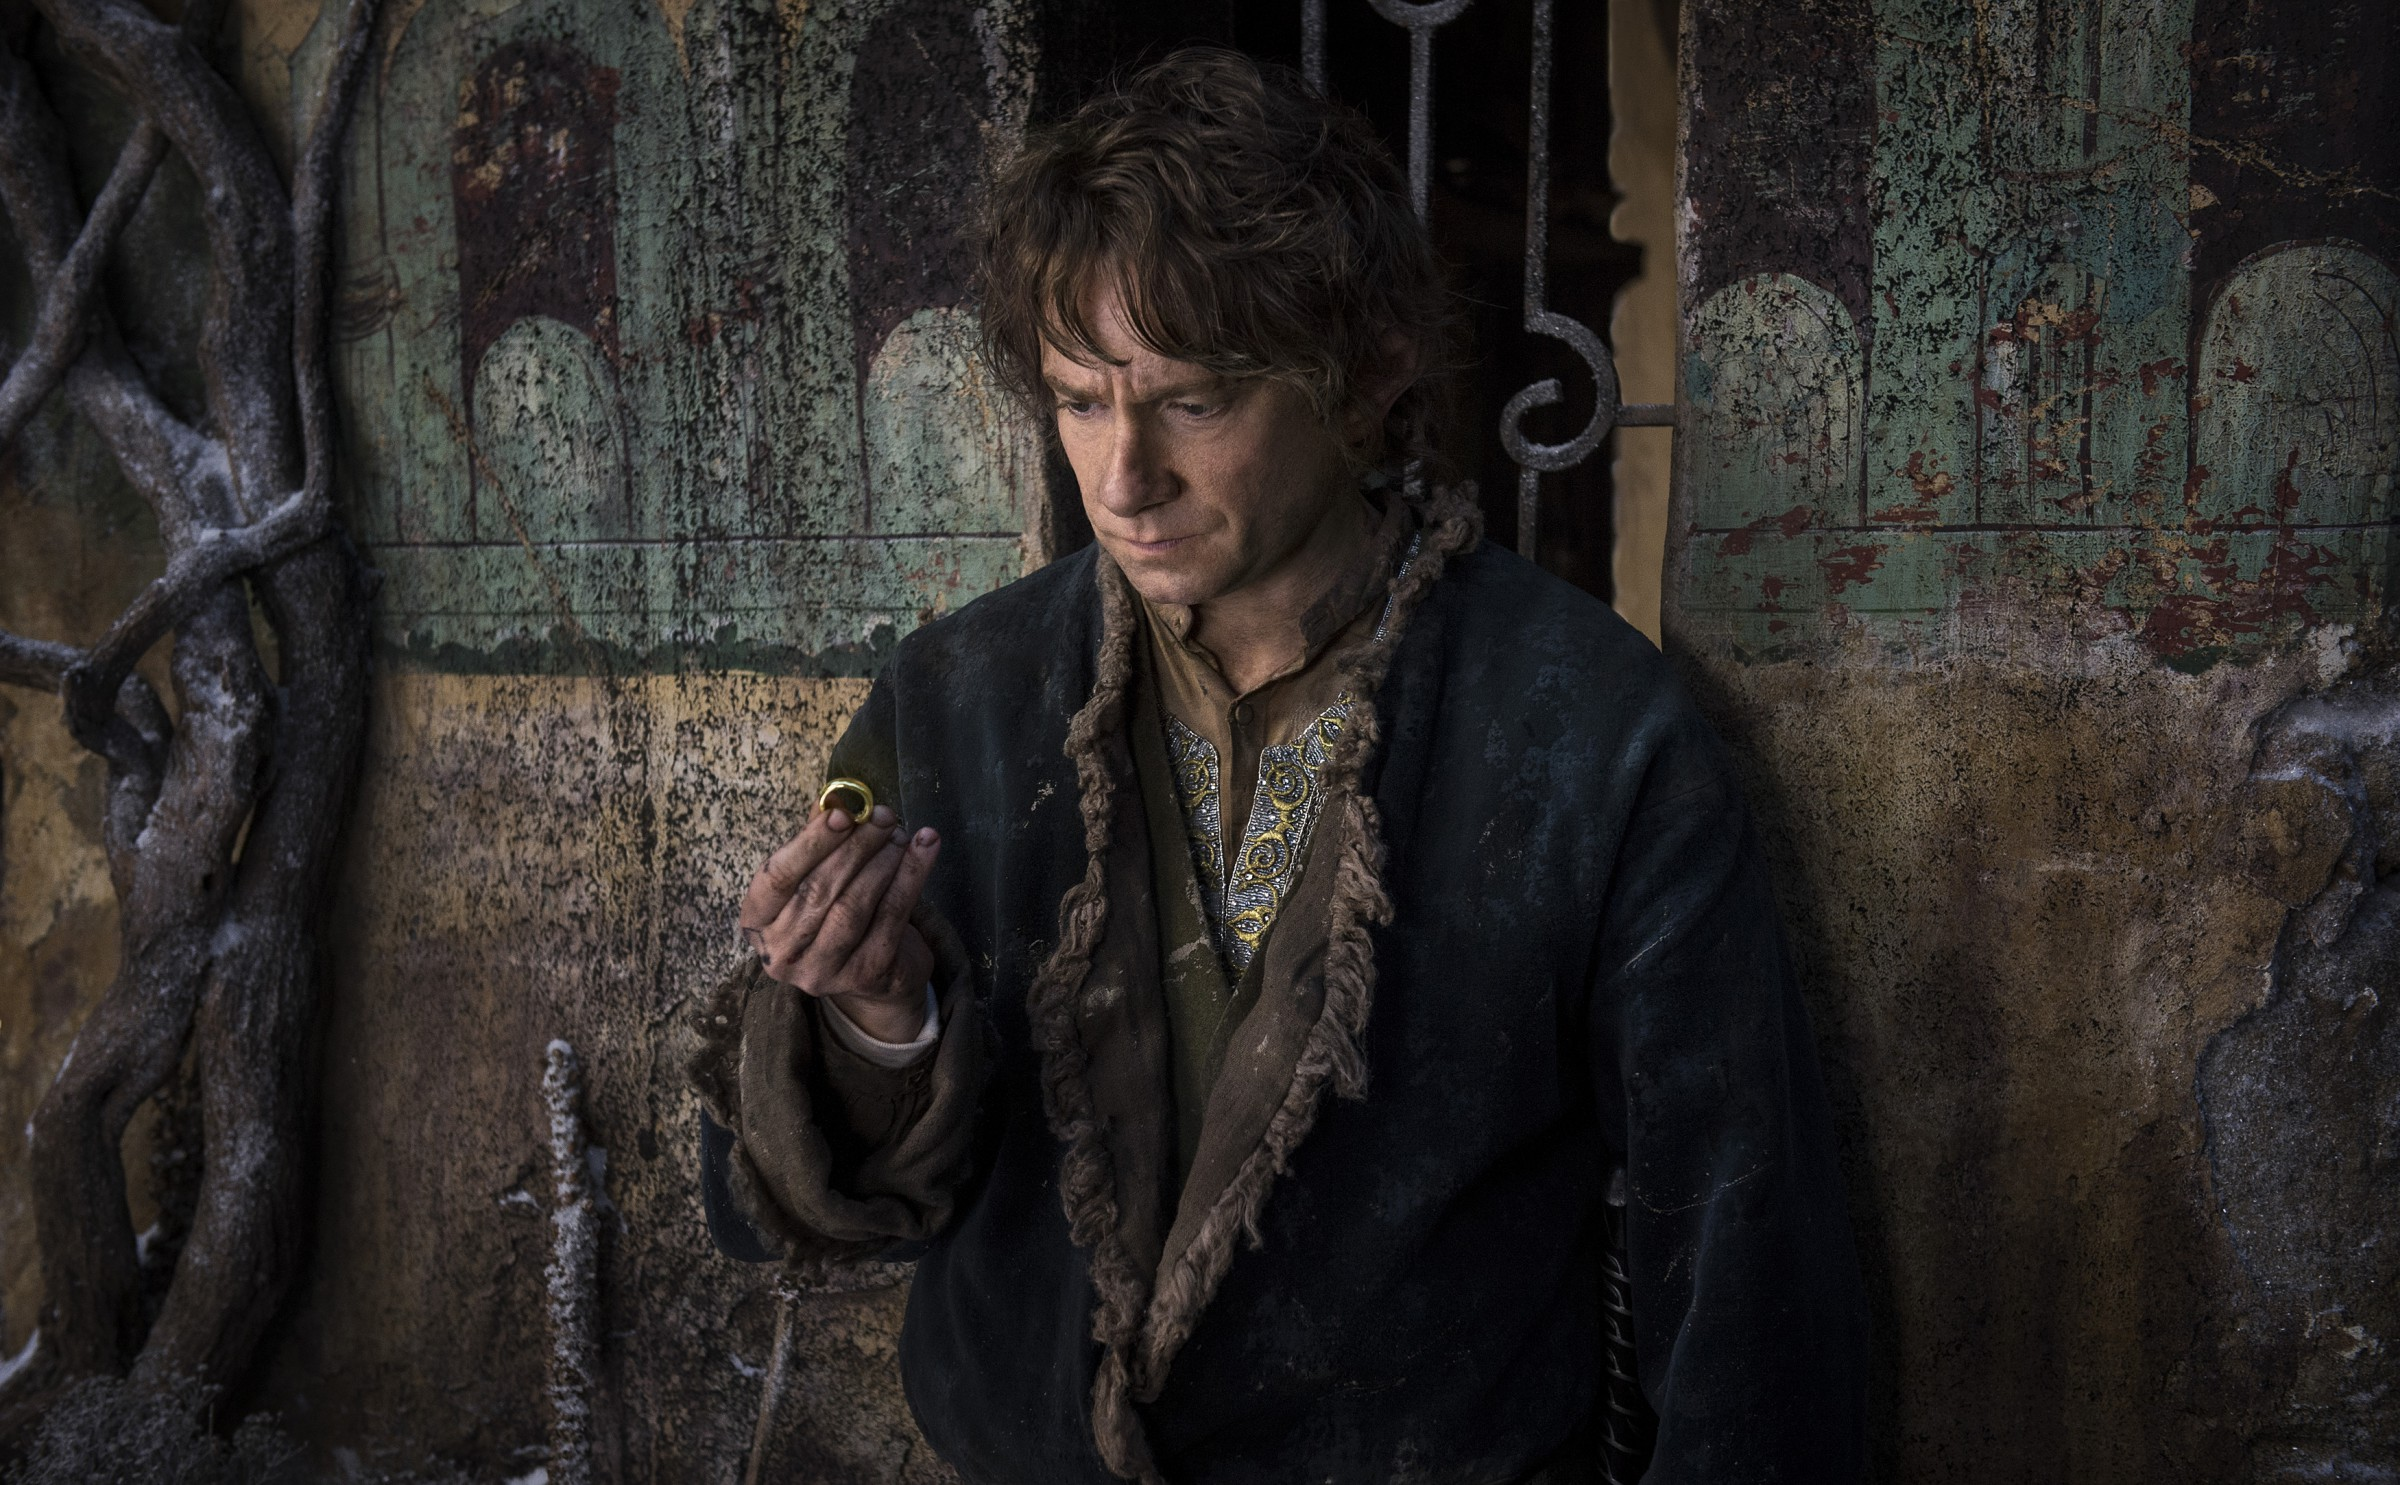 The Hobbit The Battle of the Five Armies-PHOTOS-04DEZEMBRO2014-01